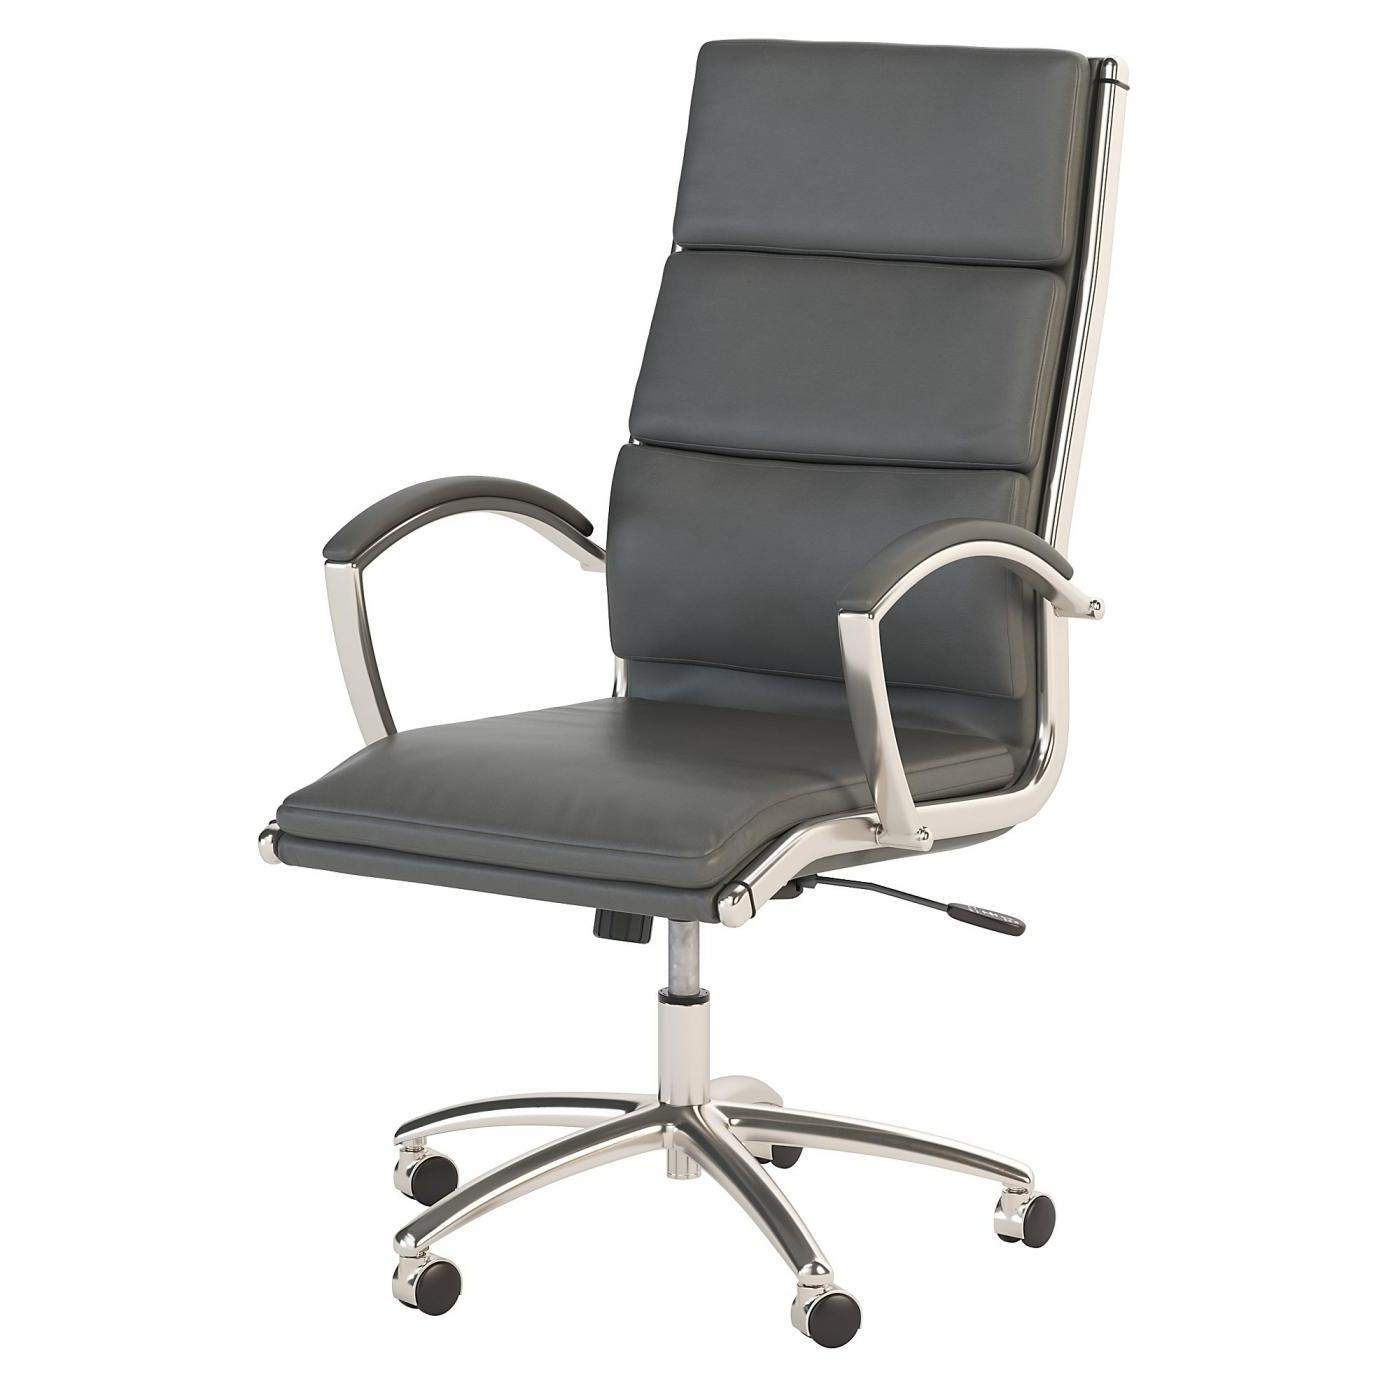 BUSH BUSINESS FURNITURE MODELO HIGH BACK LEATHER EXECUTIVE OFFICE CHAIR #EH-CH1701DGL-03. FREE SHIPPING: